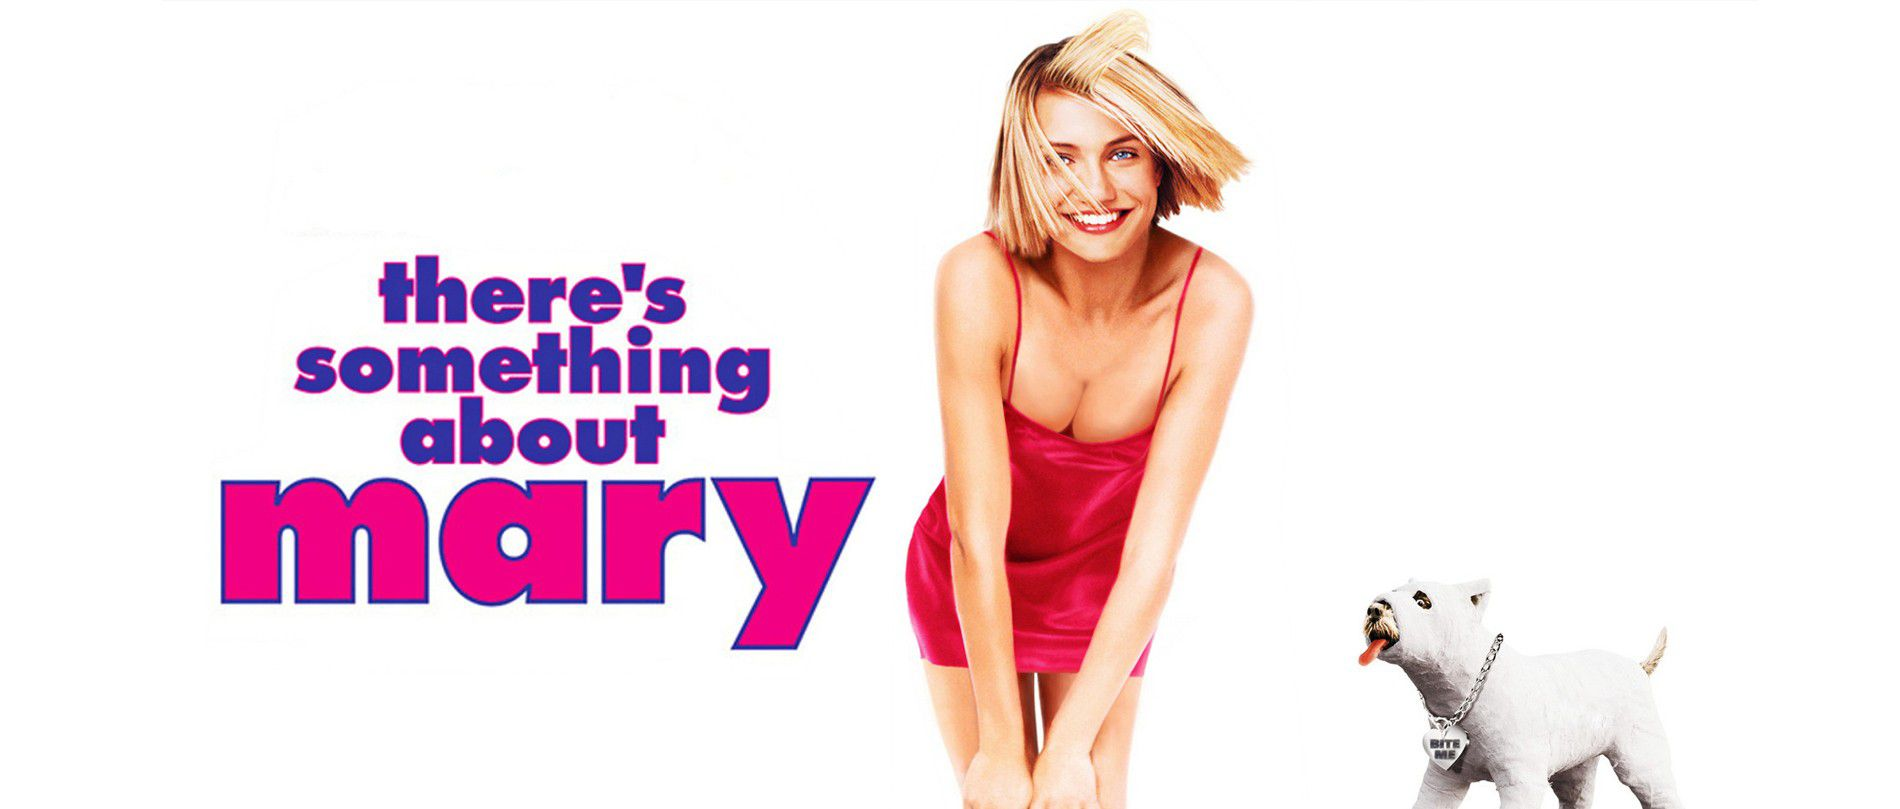 Tutti Pazzi per Mary - Theres something about Mary (1998)